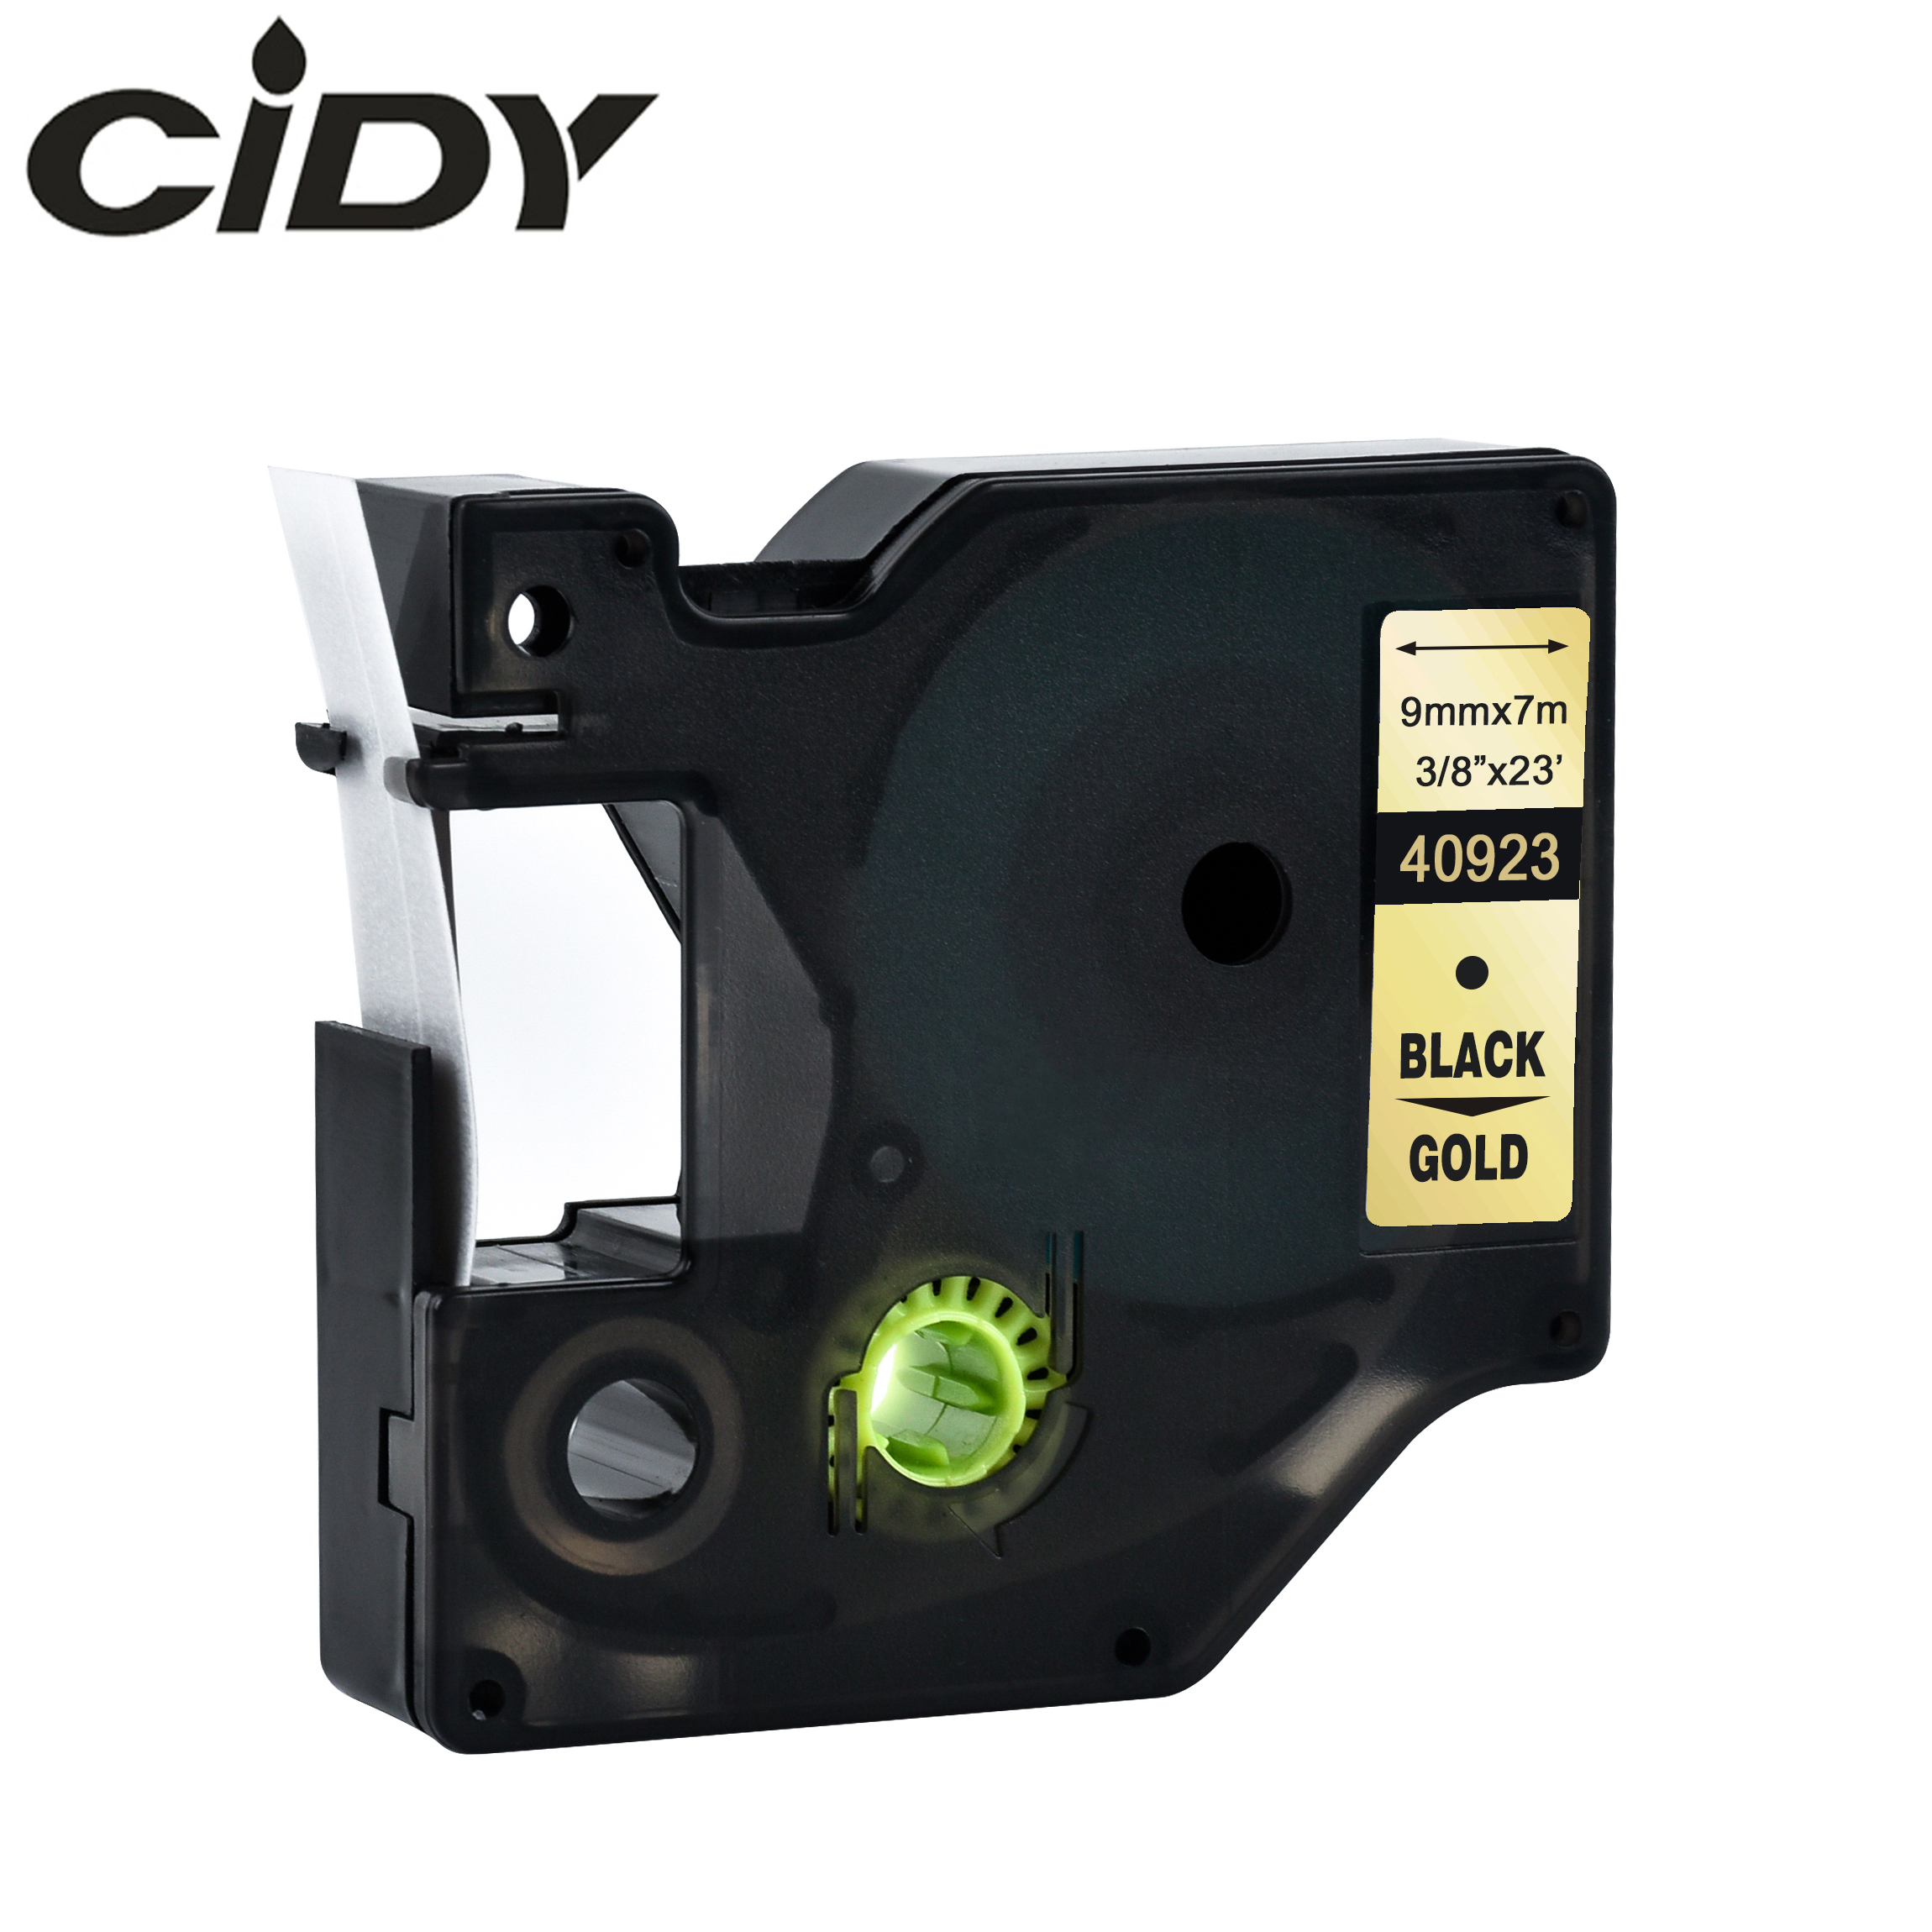 Cidy 40923 Compatible Dymo D1 Manager 9mm Black On Gold For Dymo Label Printer Label Tape For Dymo Label Manager LM 160 280